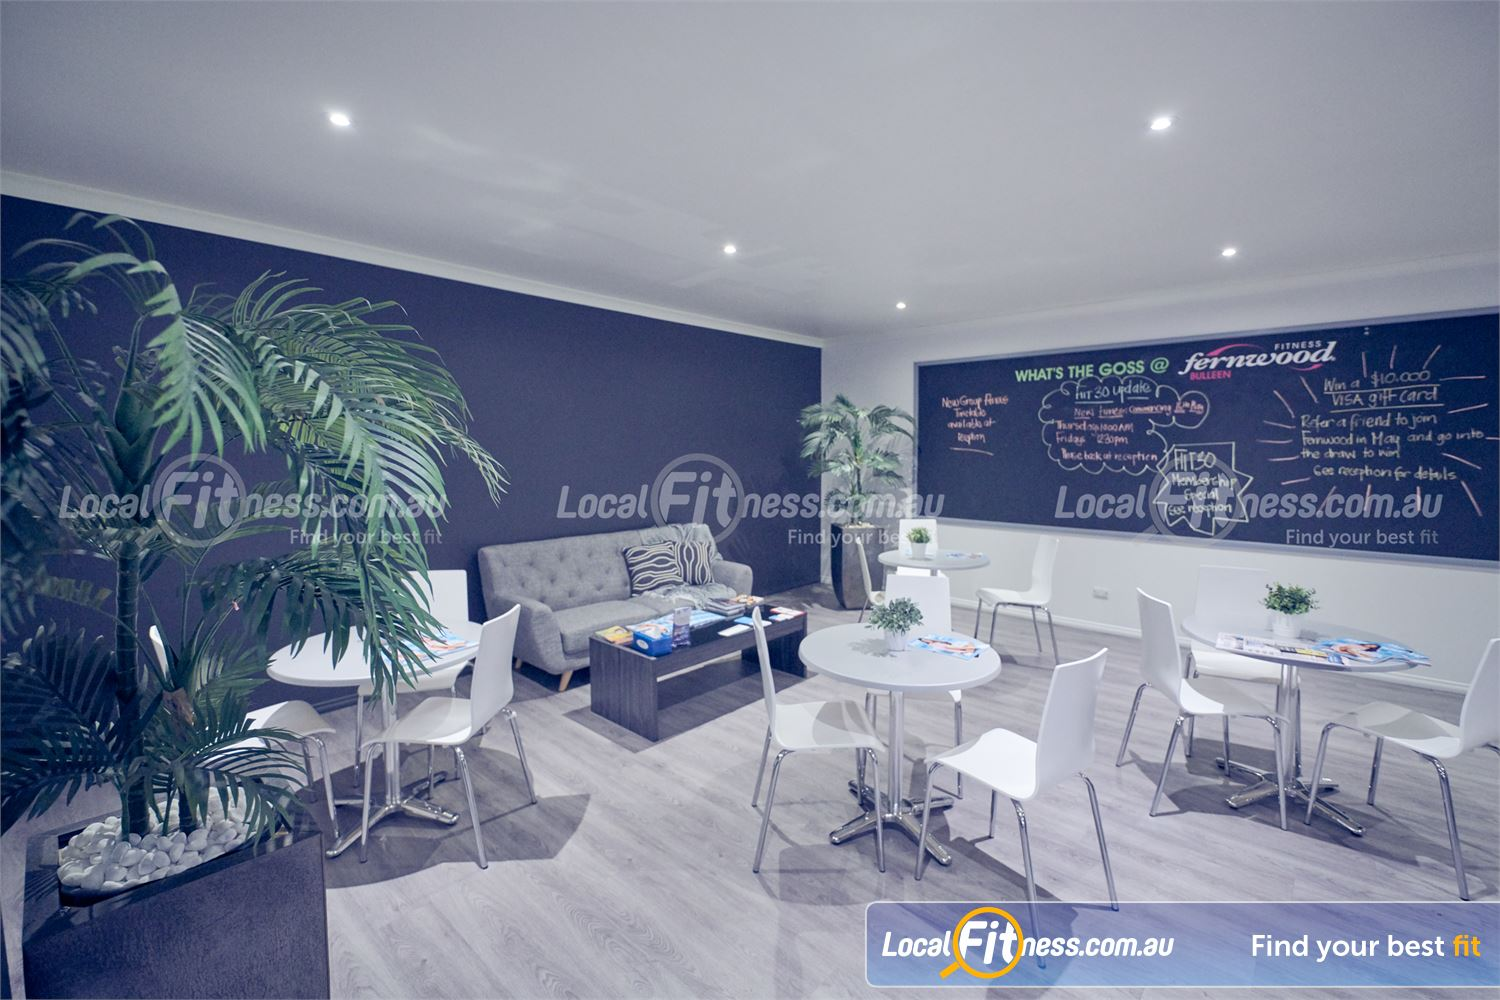 Fernwood Fitness Bulleen Share the journey with us in our Fernwood Bulleen members lounge.